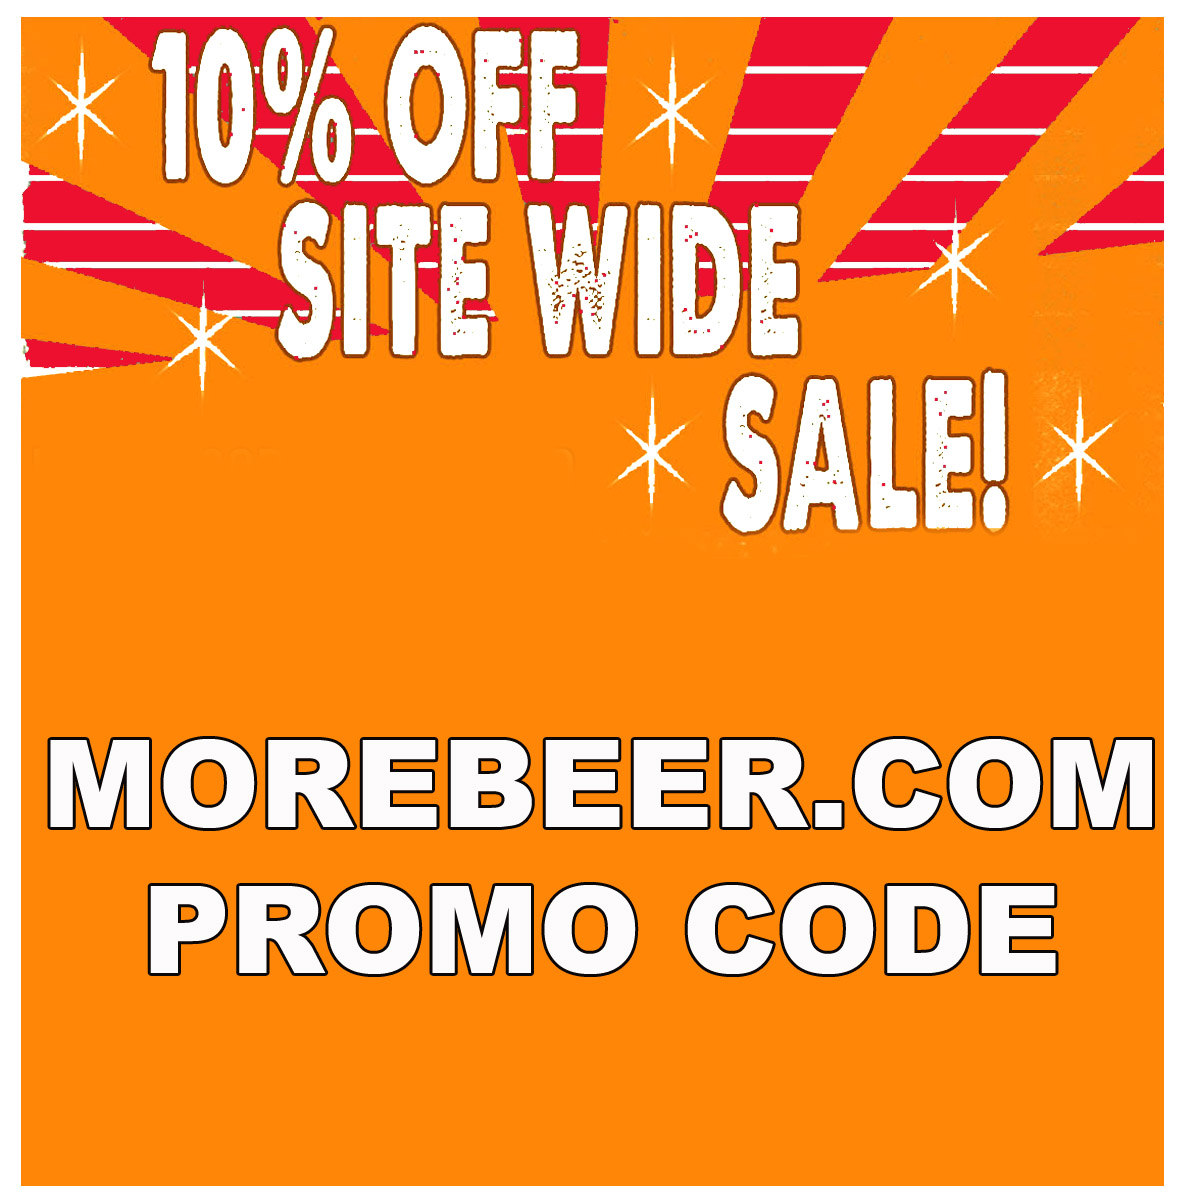 Home Wine Making Coupon Codes for Save 10% Site Wide at MoreBeer.com with this More Beer Promo Code Coupon Code